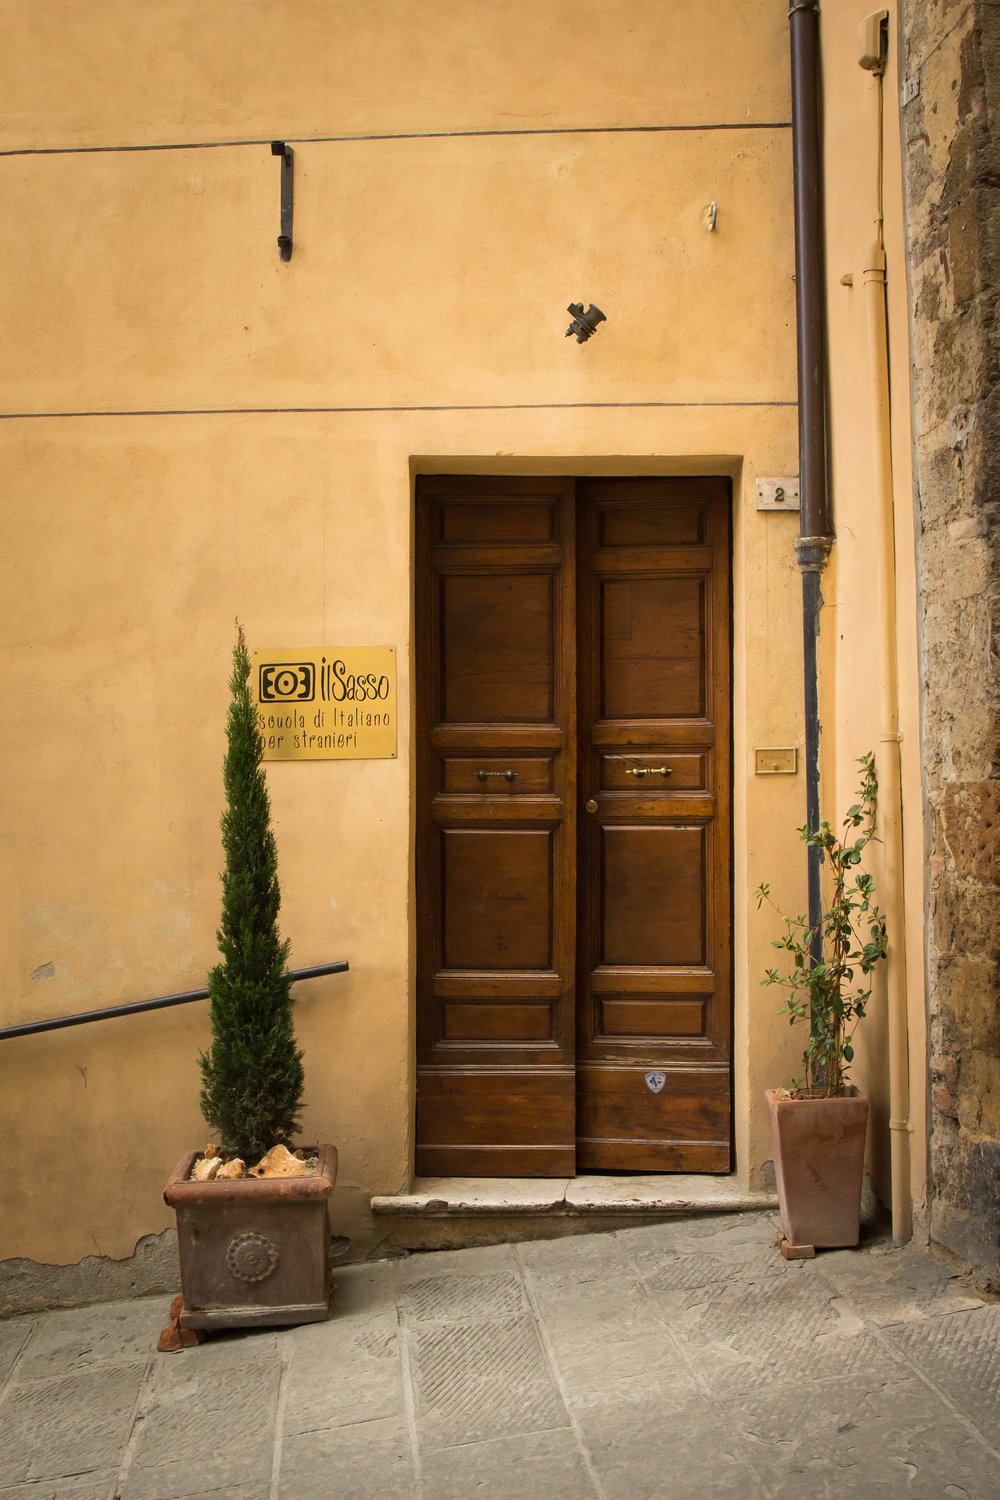 Il Sasso, Italian Language School - our meeting place for classes.